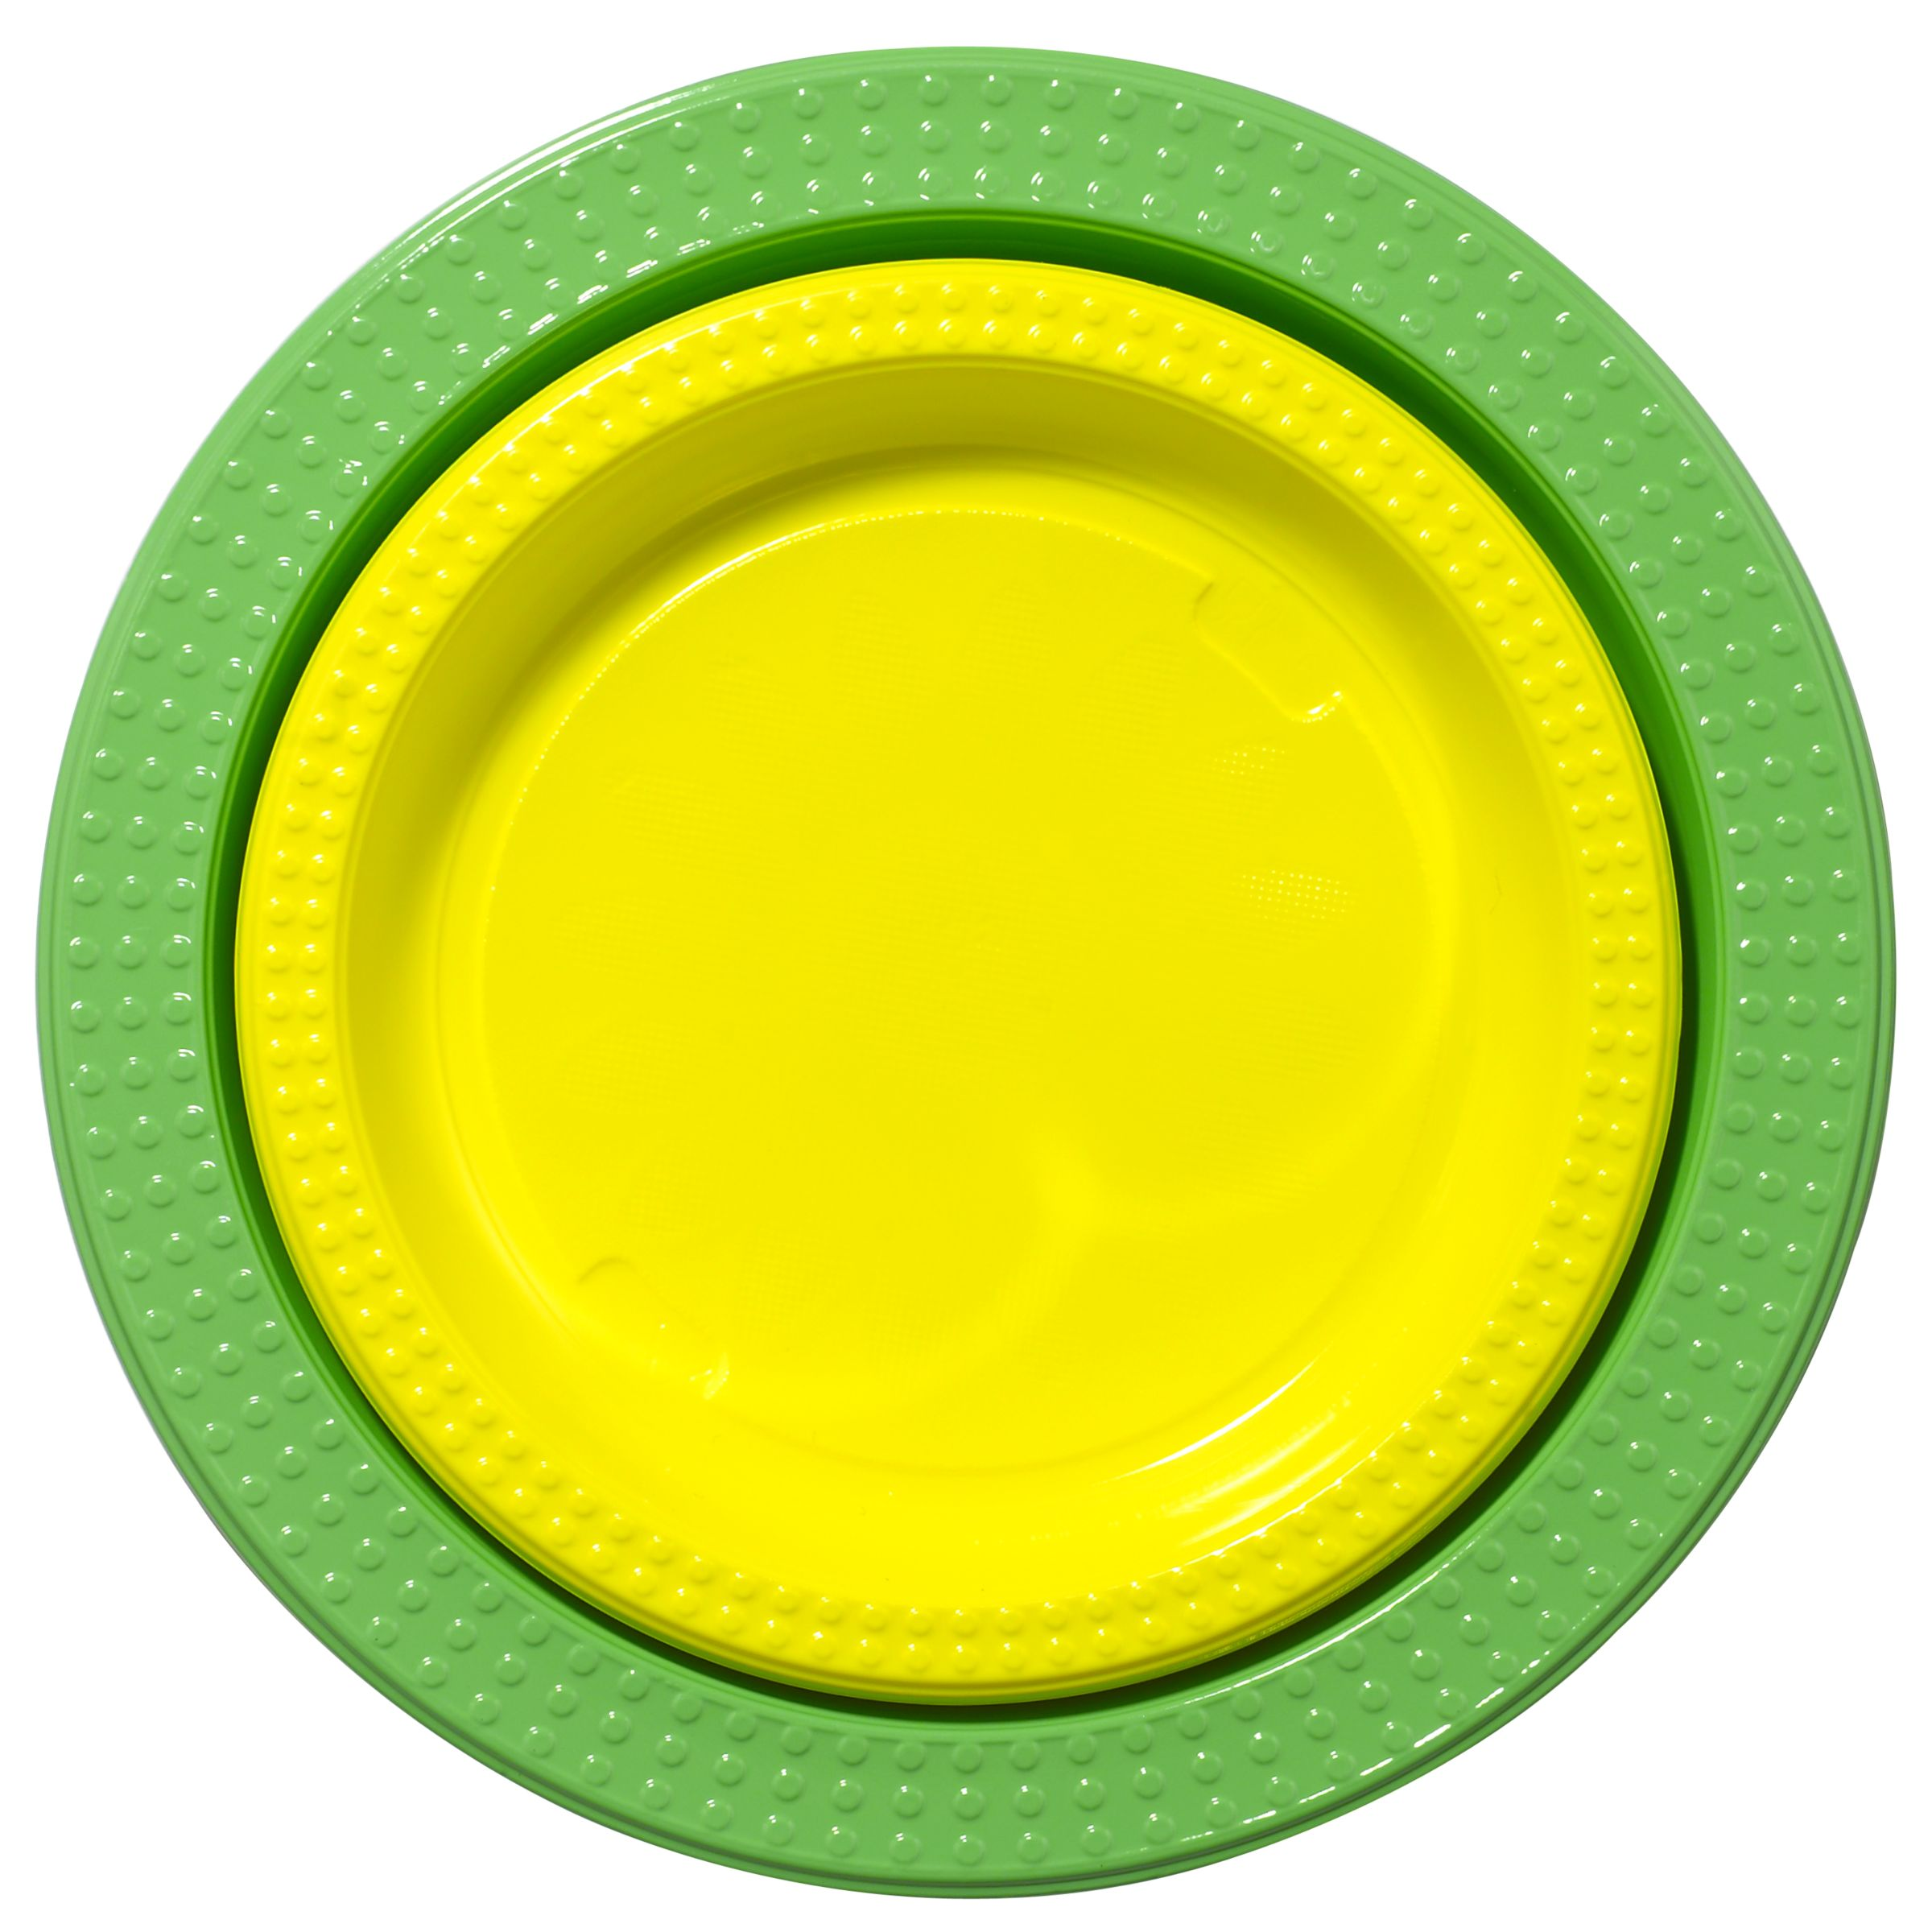 Duni Plastic Plates, Blue, Pack Of 20, Green/Yellow